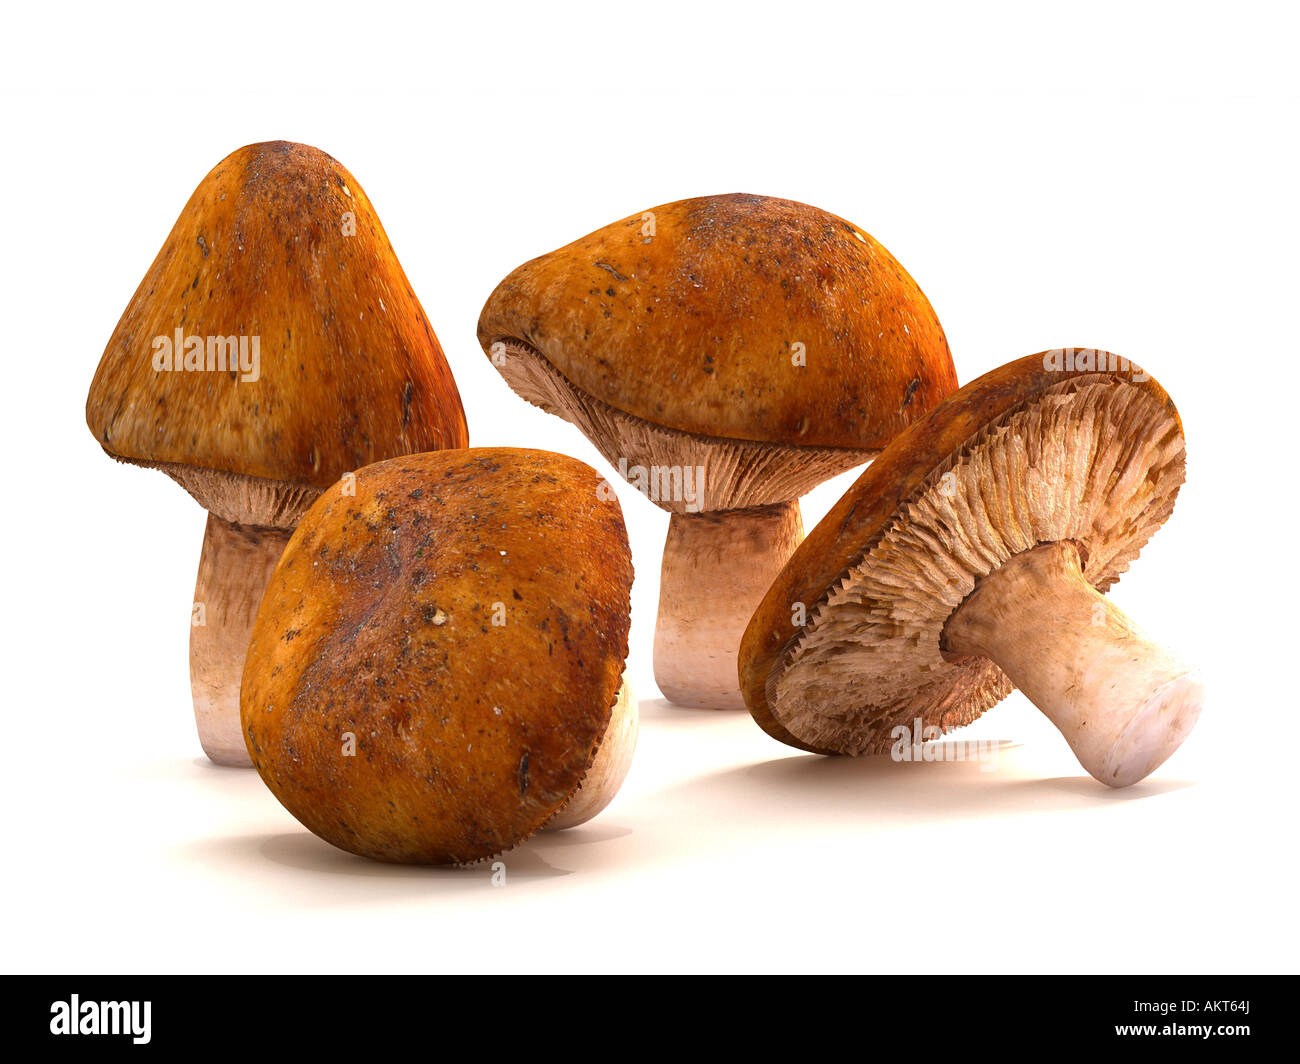 Four classic mushrooms shaped by natures glorious art. Scattered against a white background for easy isolation. - Stock Image